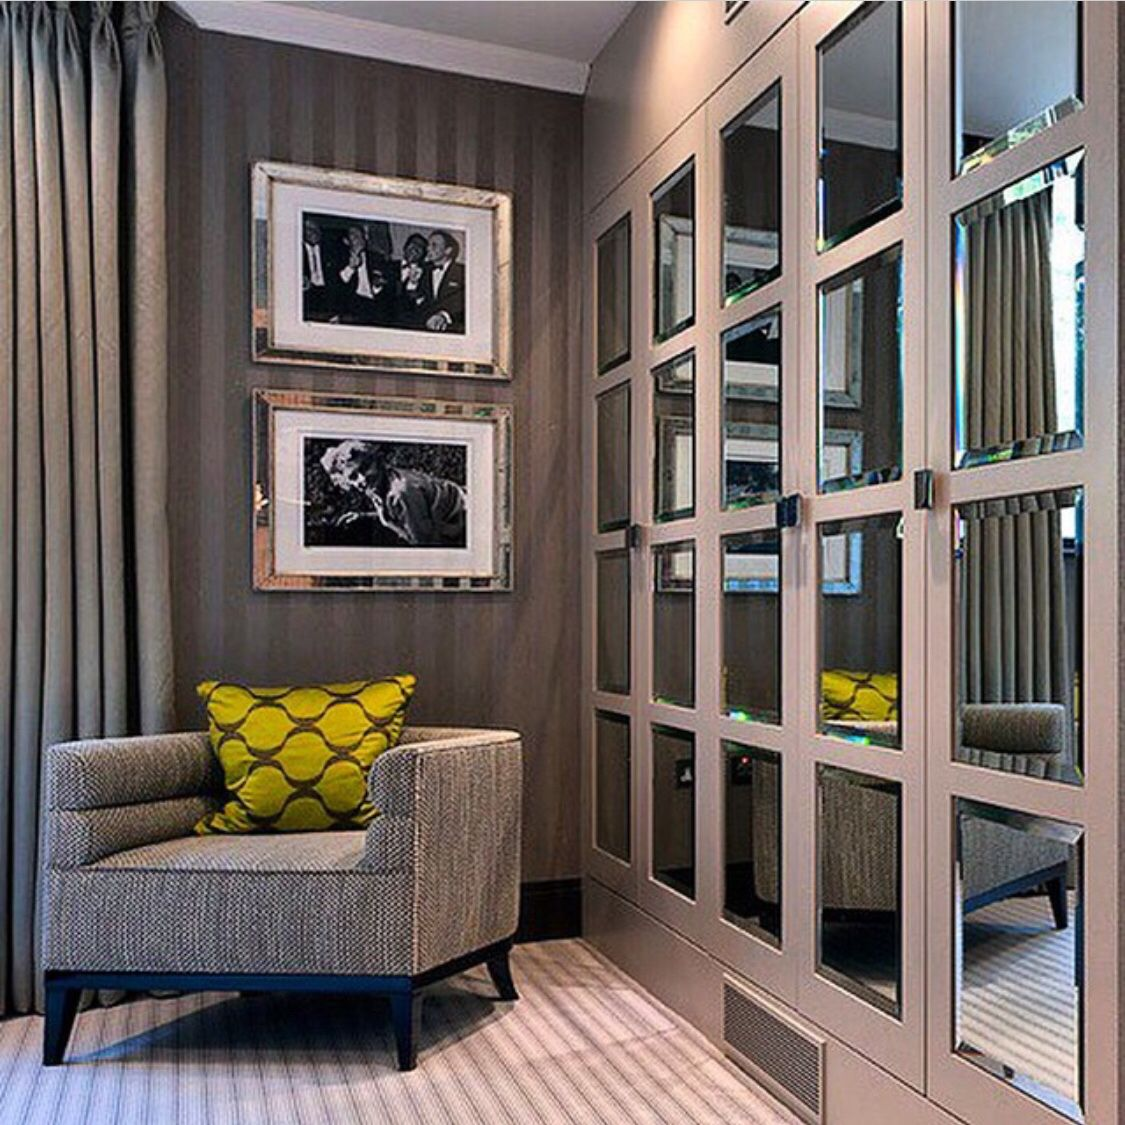 Loft bedroom fitted wardrobes  Pin by Gaye Erukcu on genç kız odası  Pinterest  Bedrooms